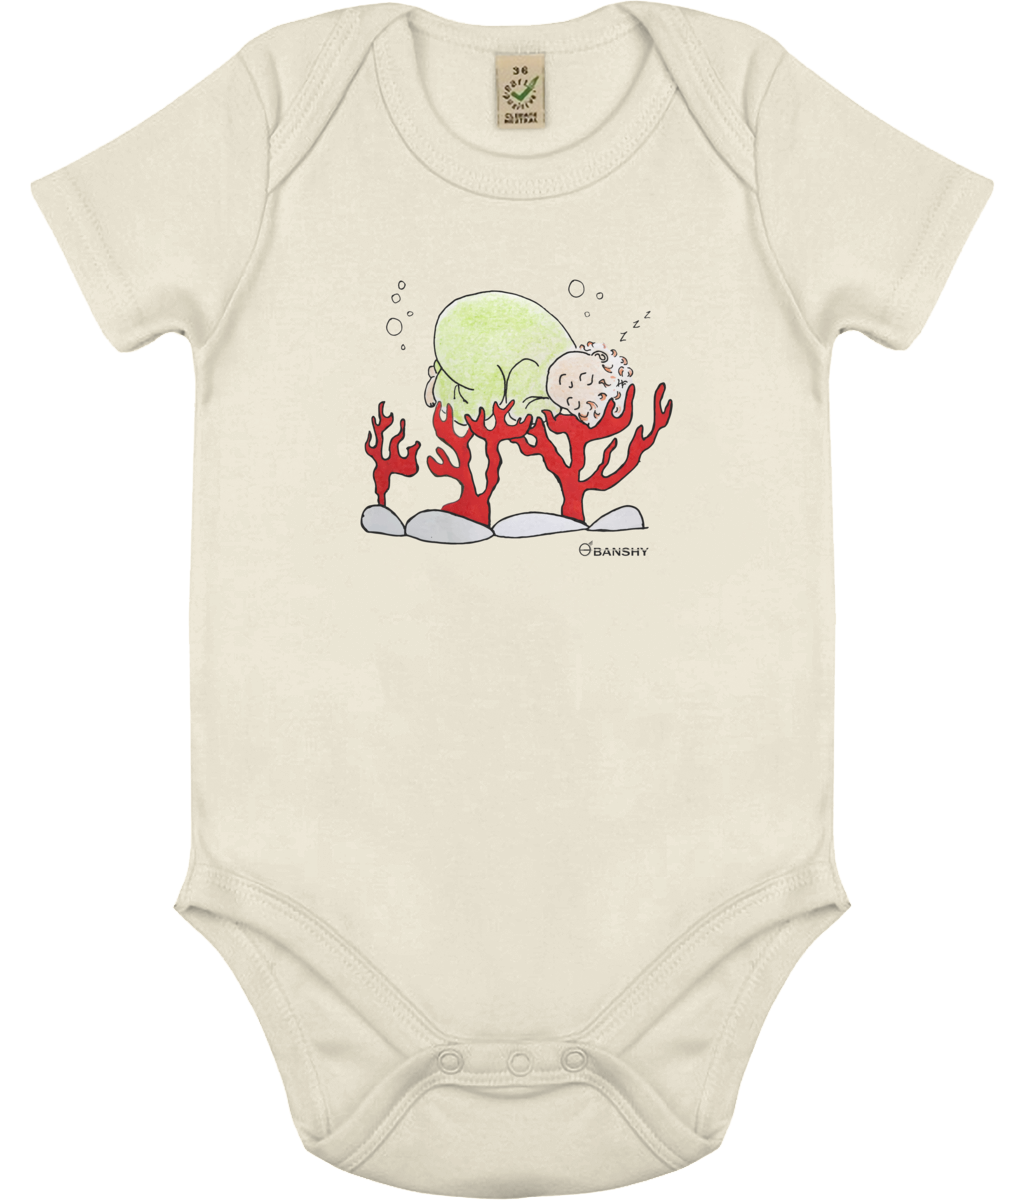 Babygrow world's arms - Clothing - Ecru / 0-3 months - 100% cotton - Banshy